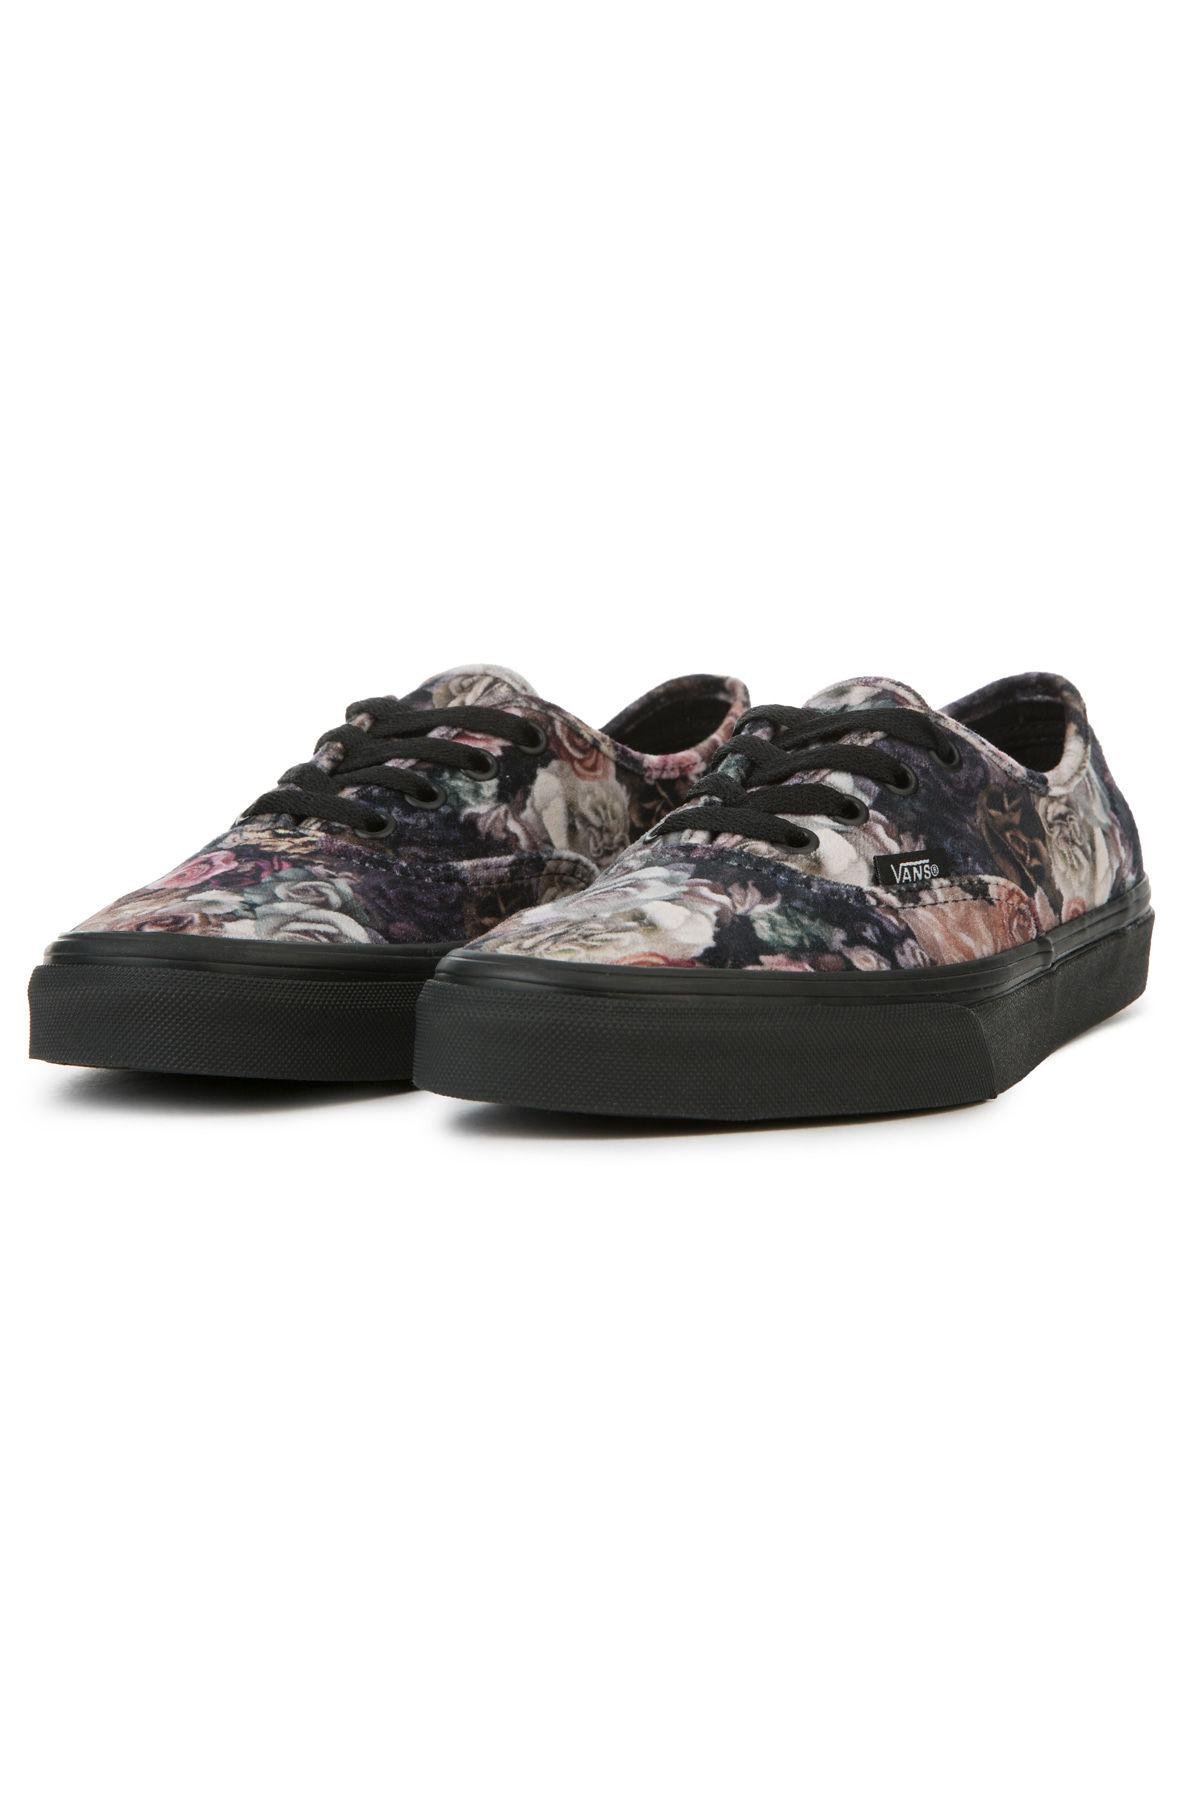 1e2ec4a26a5 Lyst - Vans The Women s Authentic Velvet Floral in Black